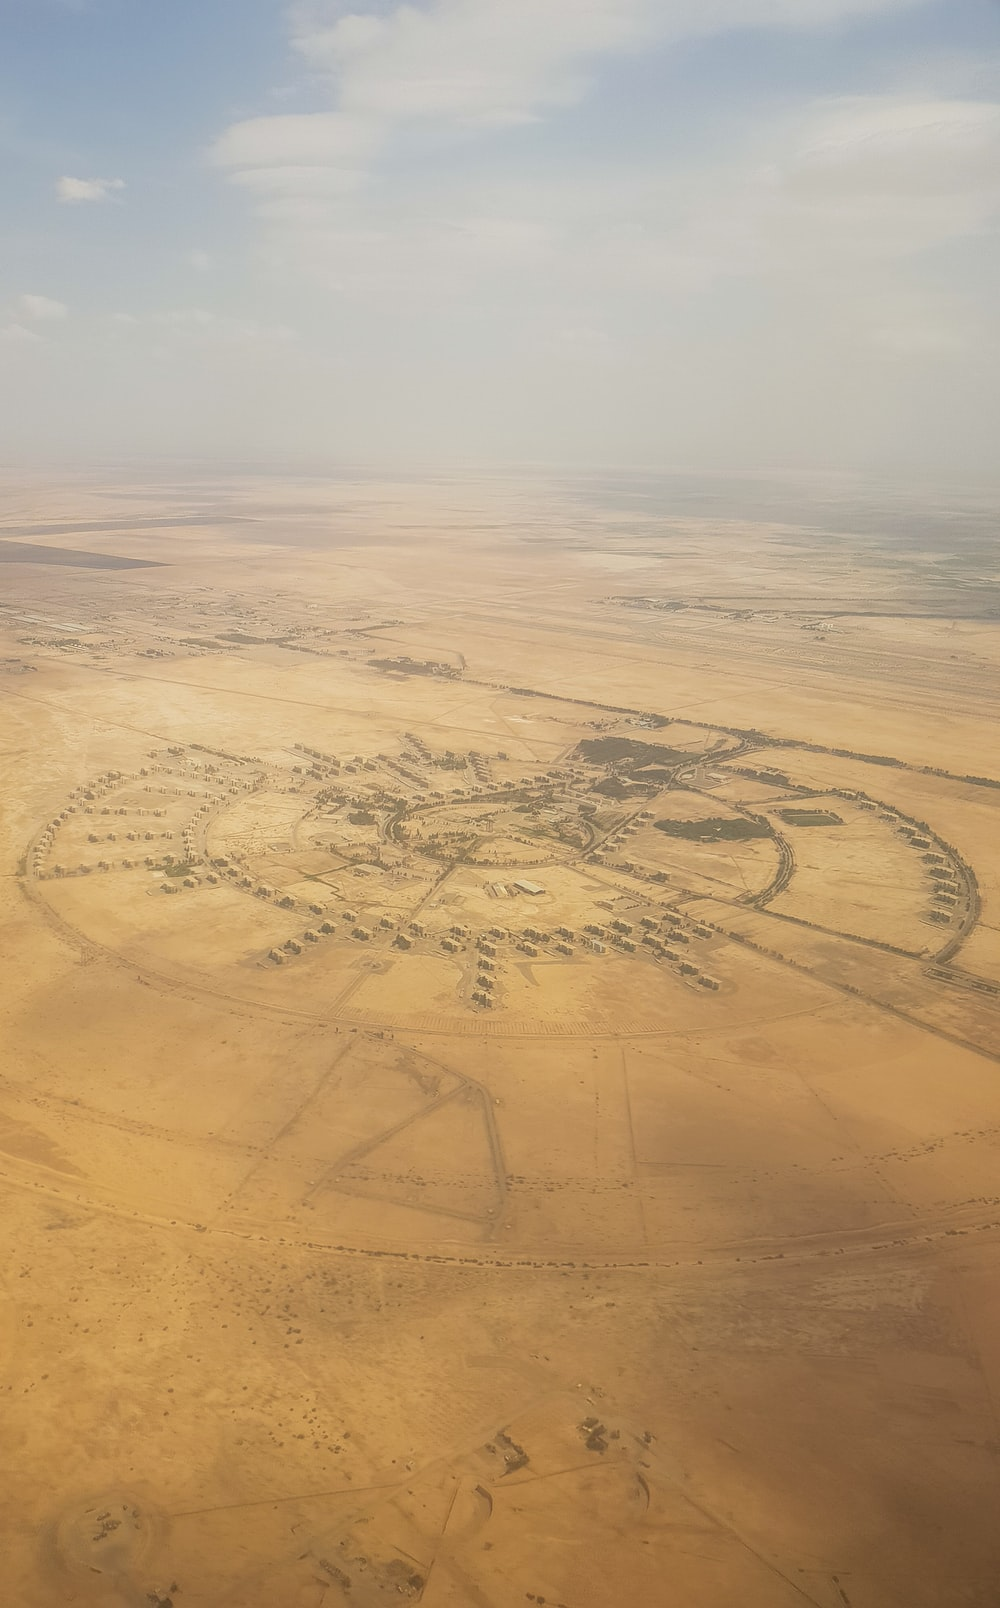 aerial view of crop circle